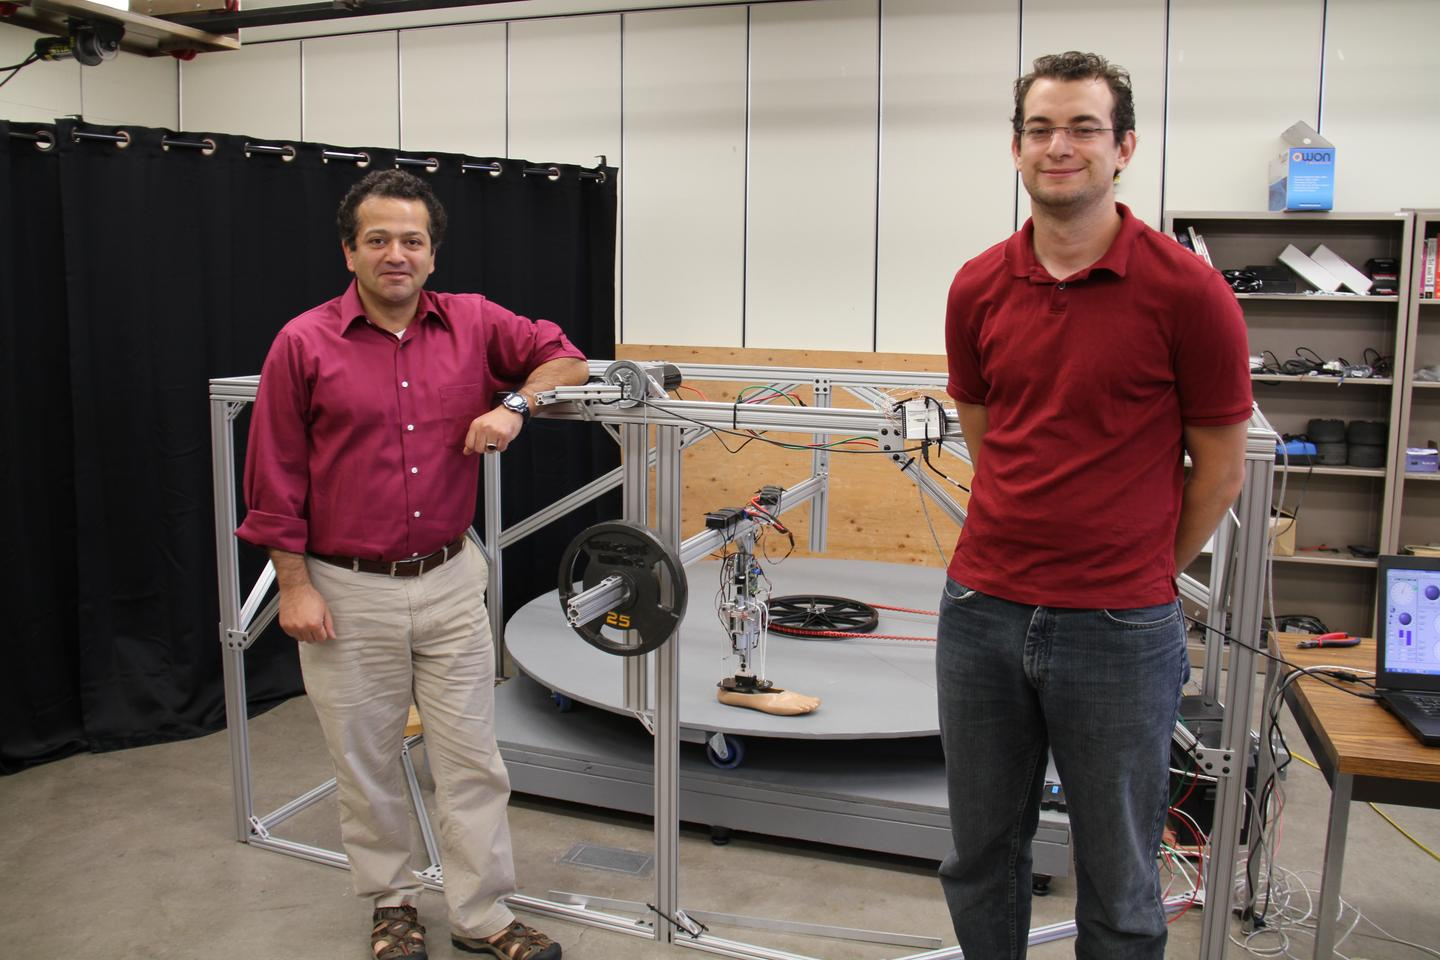 Prof. Mo Rastgaar (left) and PhD student Evandro Ficanha, with the leg and its testing rig